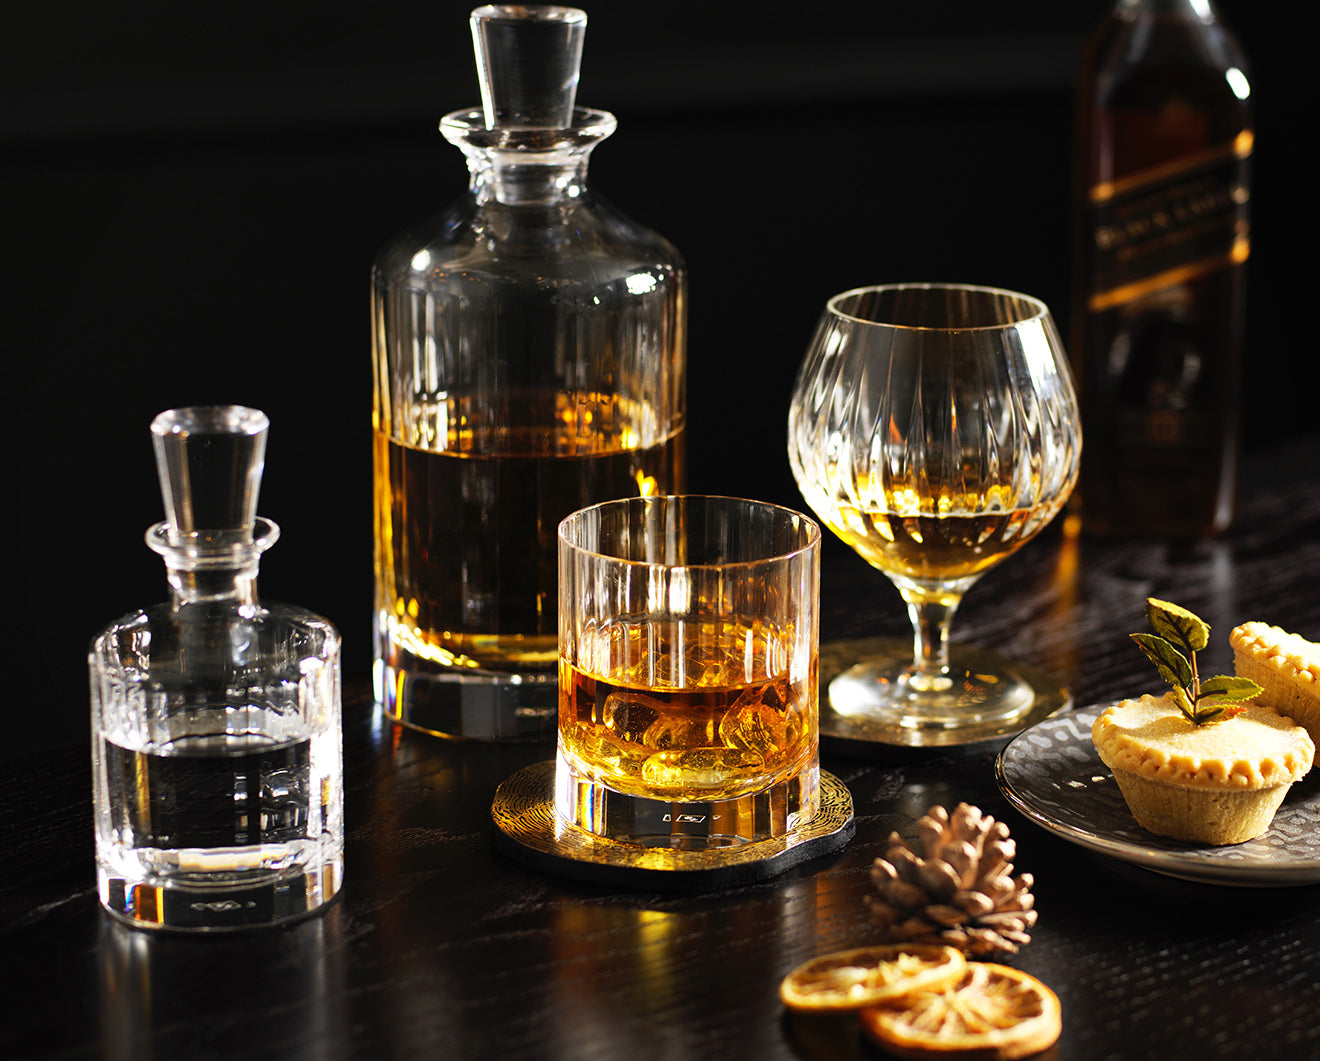 Luxury Crystal Barware and decanters from Luxdeco